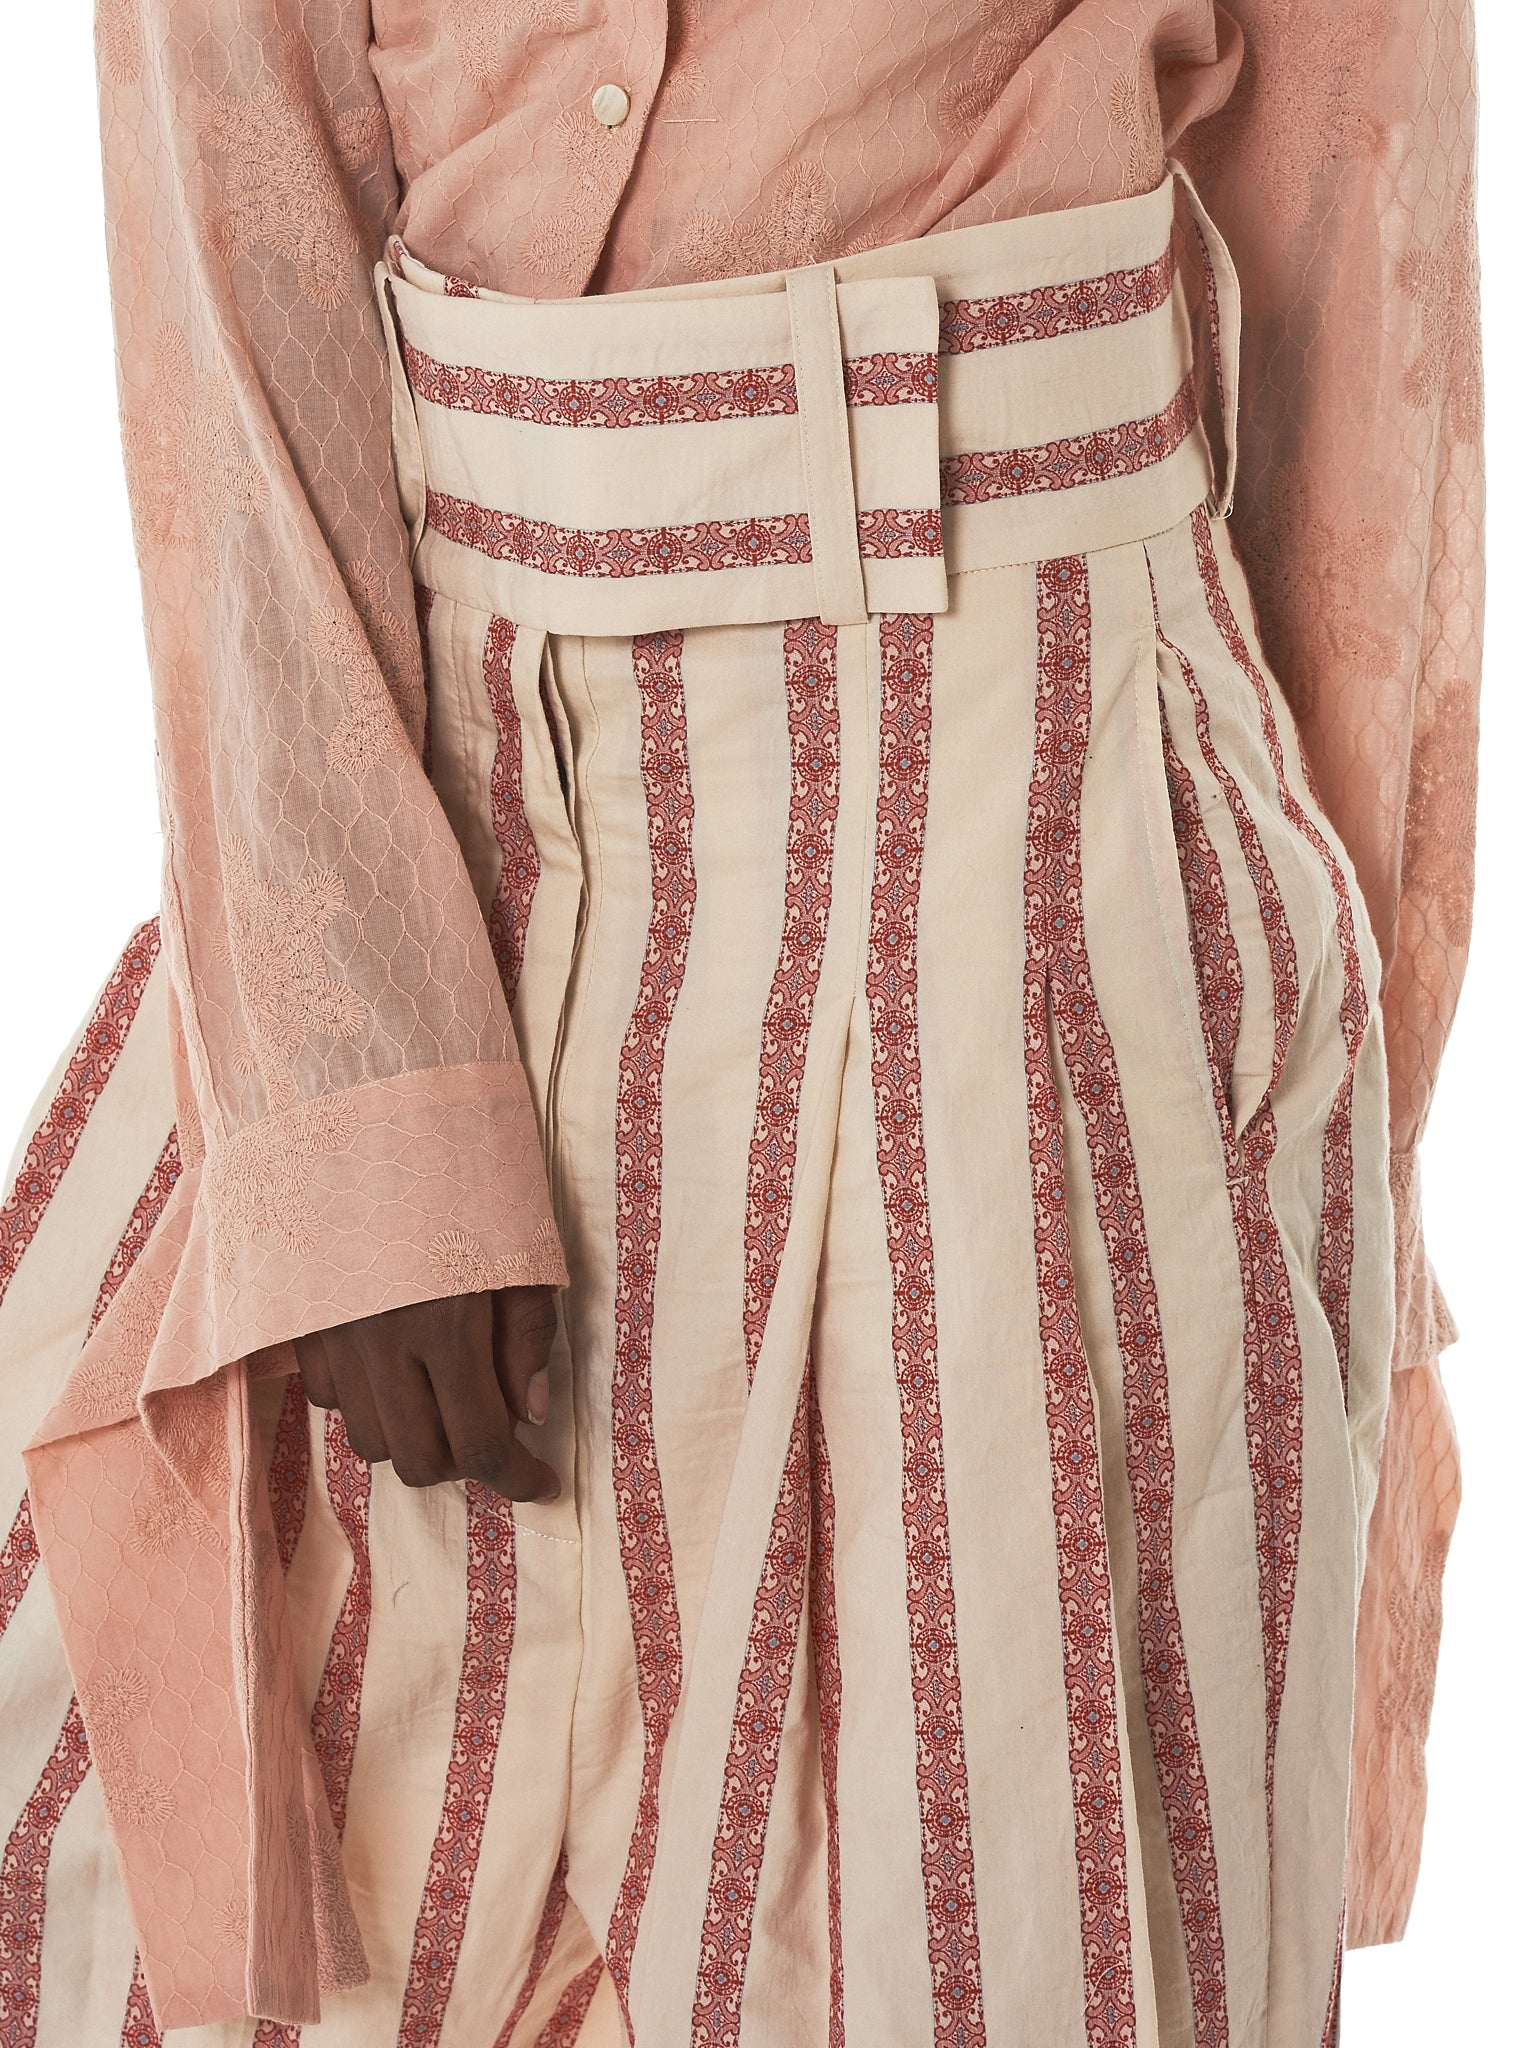 Daniel Gregory Natale Striped Trousers - Hlorenzo Detail 3